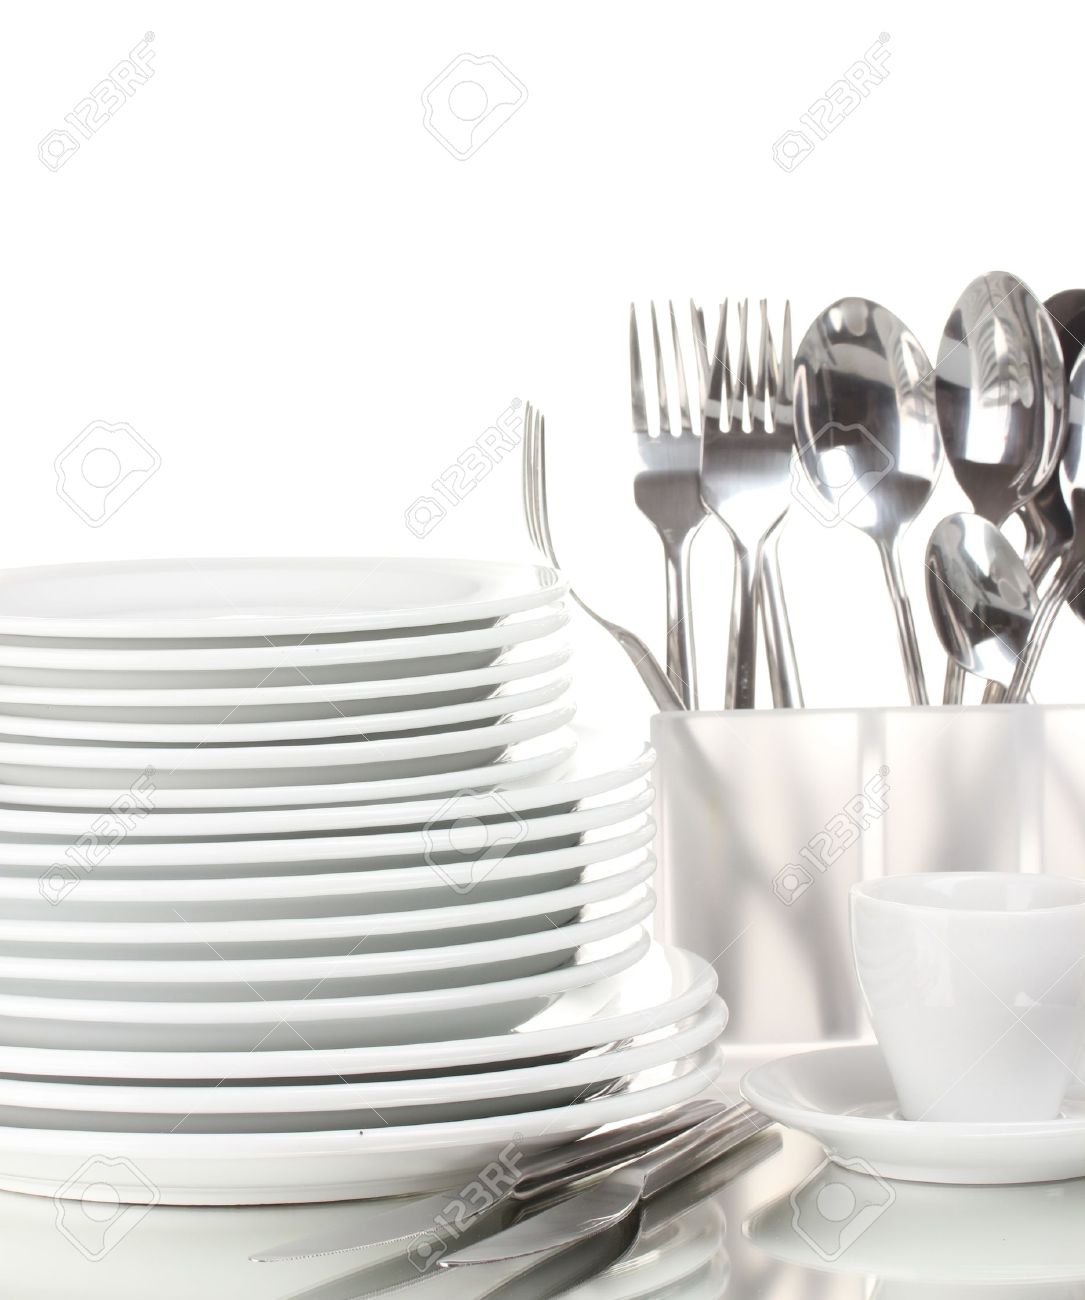 clean plates and cutlery isolated on white stock photo, picture